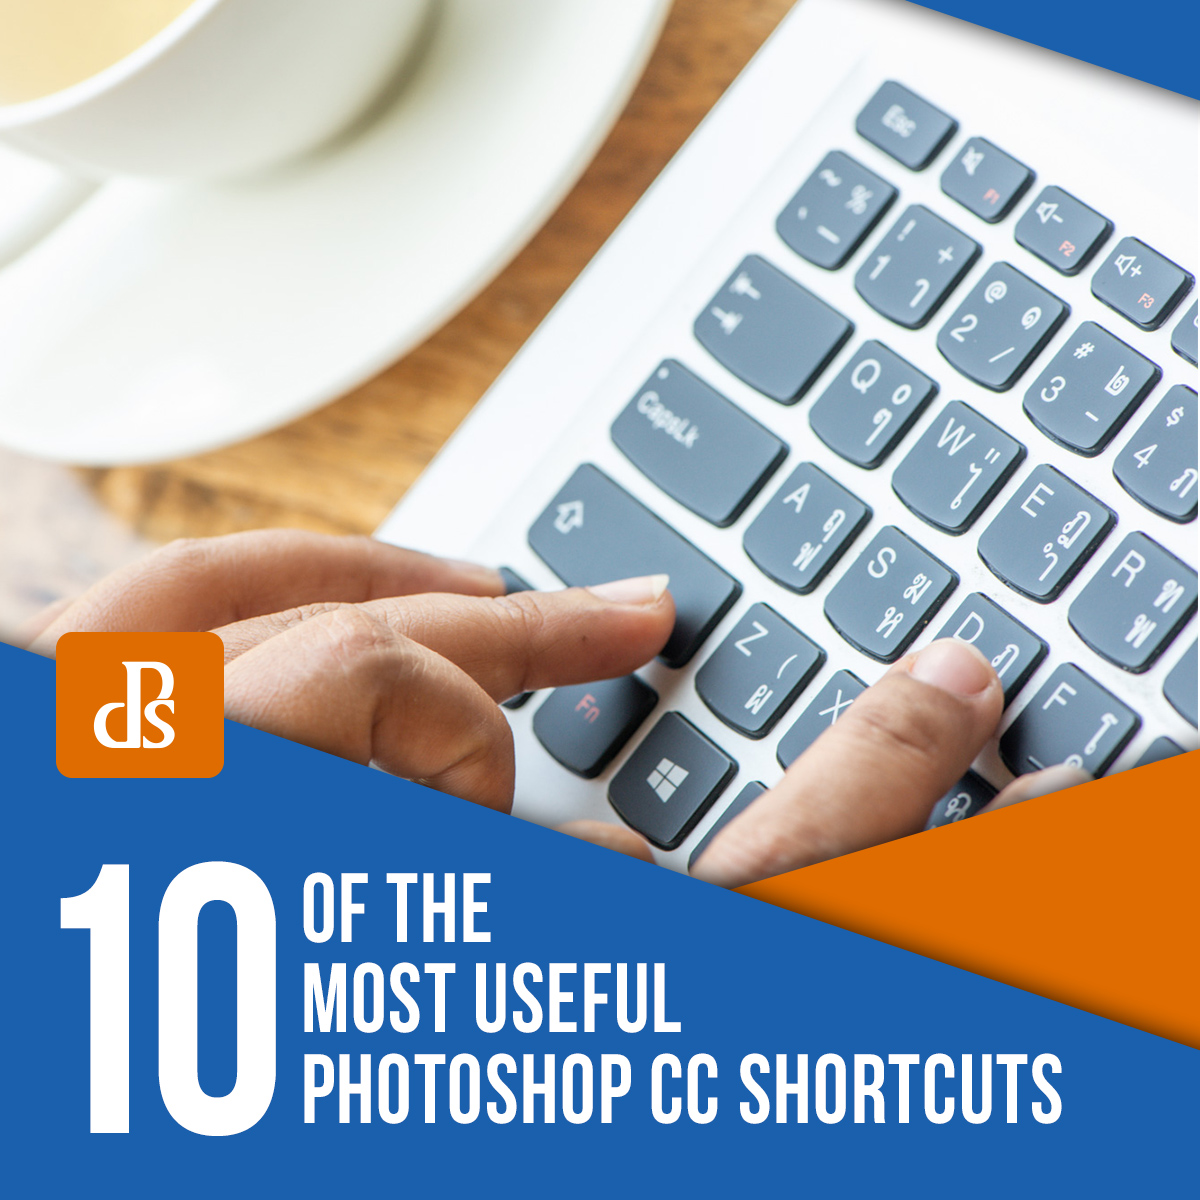 photoshop-cc-shortcuts-list